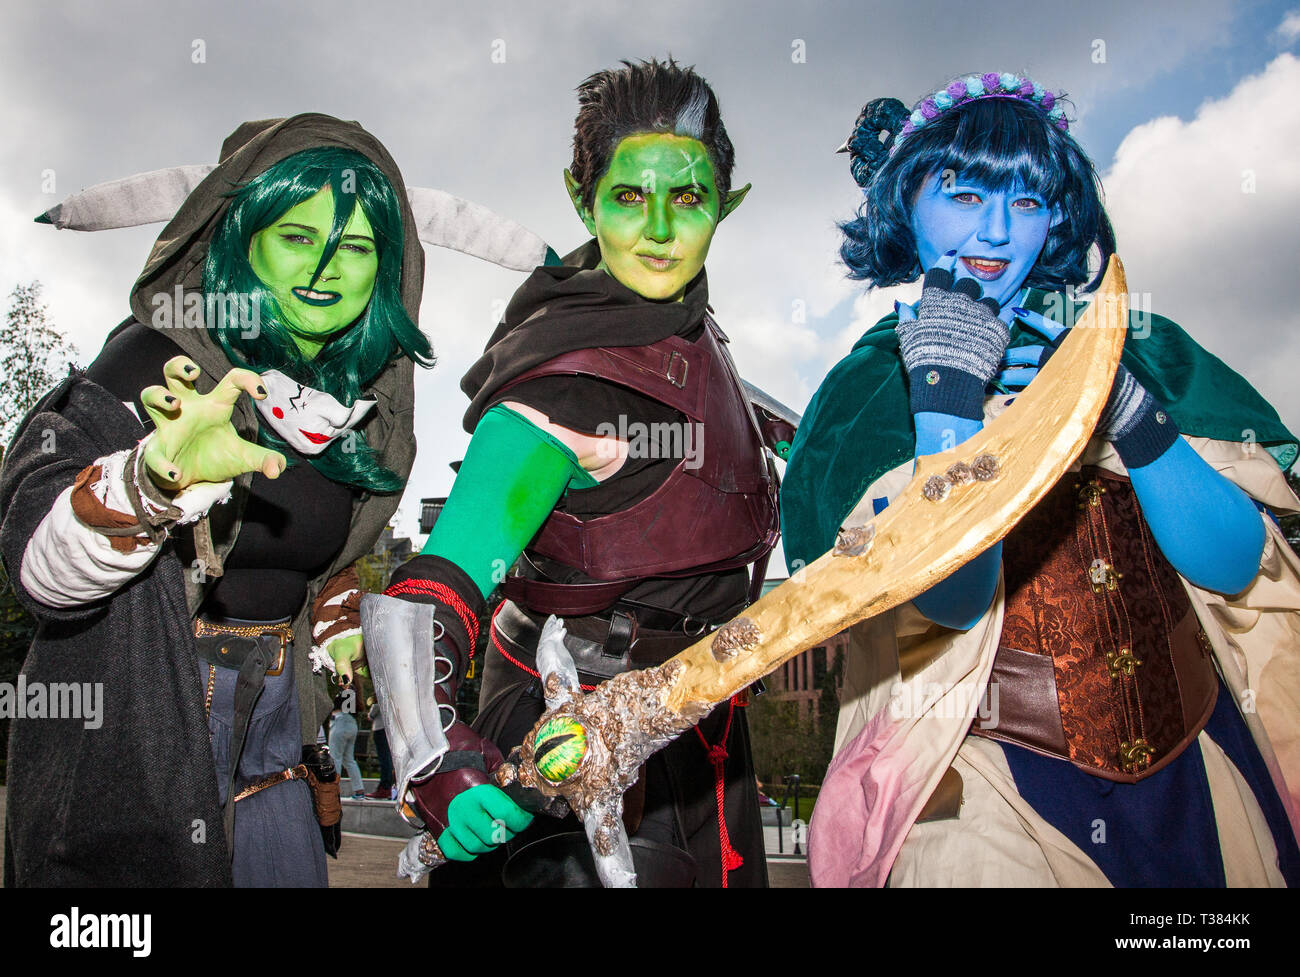 Cork City, Cork, Ireland. 07th April, 2019.  Matylda Gruszewska AKA Hakkcosplay, Emma Babington AKA Shadow Sionnach and Chloe Leahy AKA Coschloo who attended the Kaizoku-Con, Anime, Gaming and Sci-Fi Convention  that was held at University College Cork, Ireland. Picture David Creedon / Anzenberger Credit: David Creedon/Alamy Live News - Stock Image